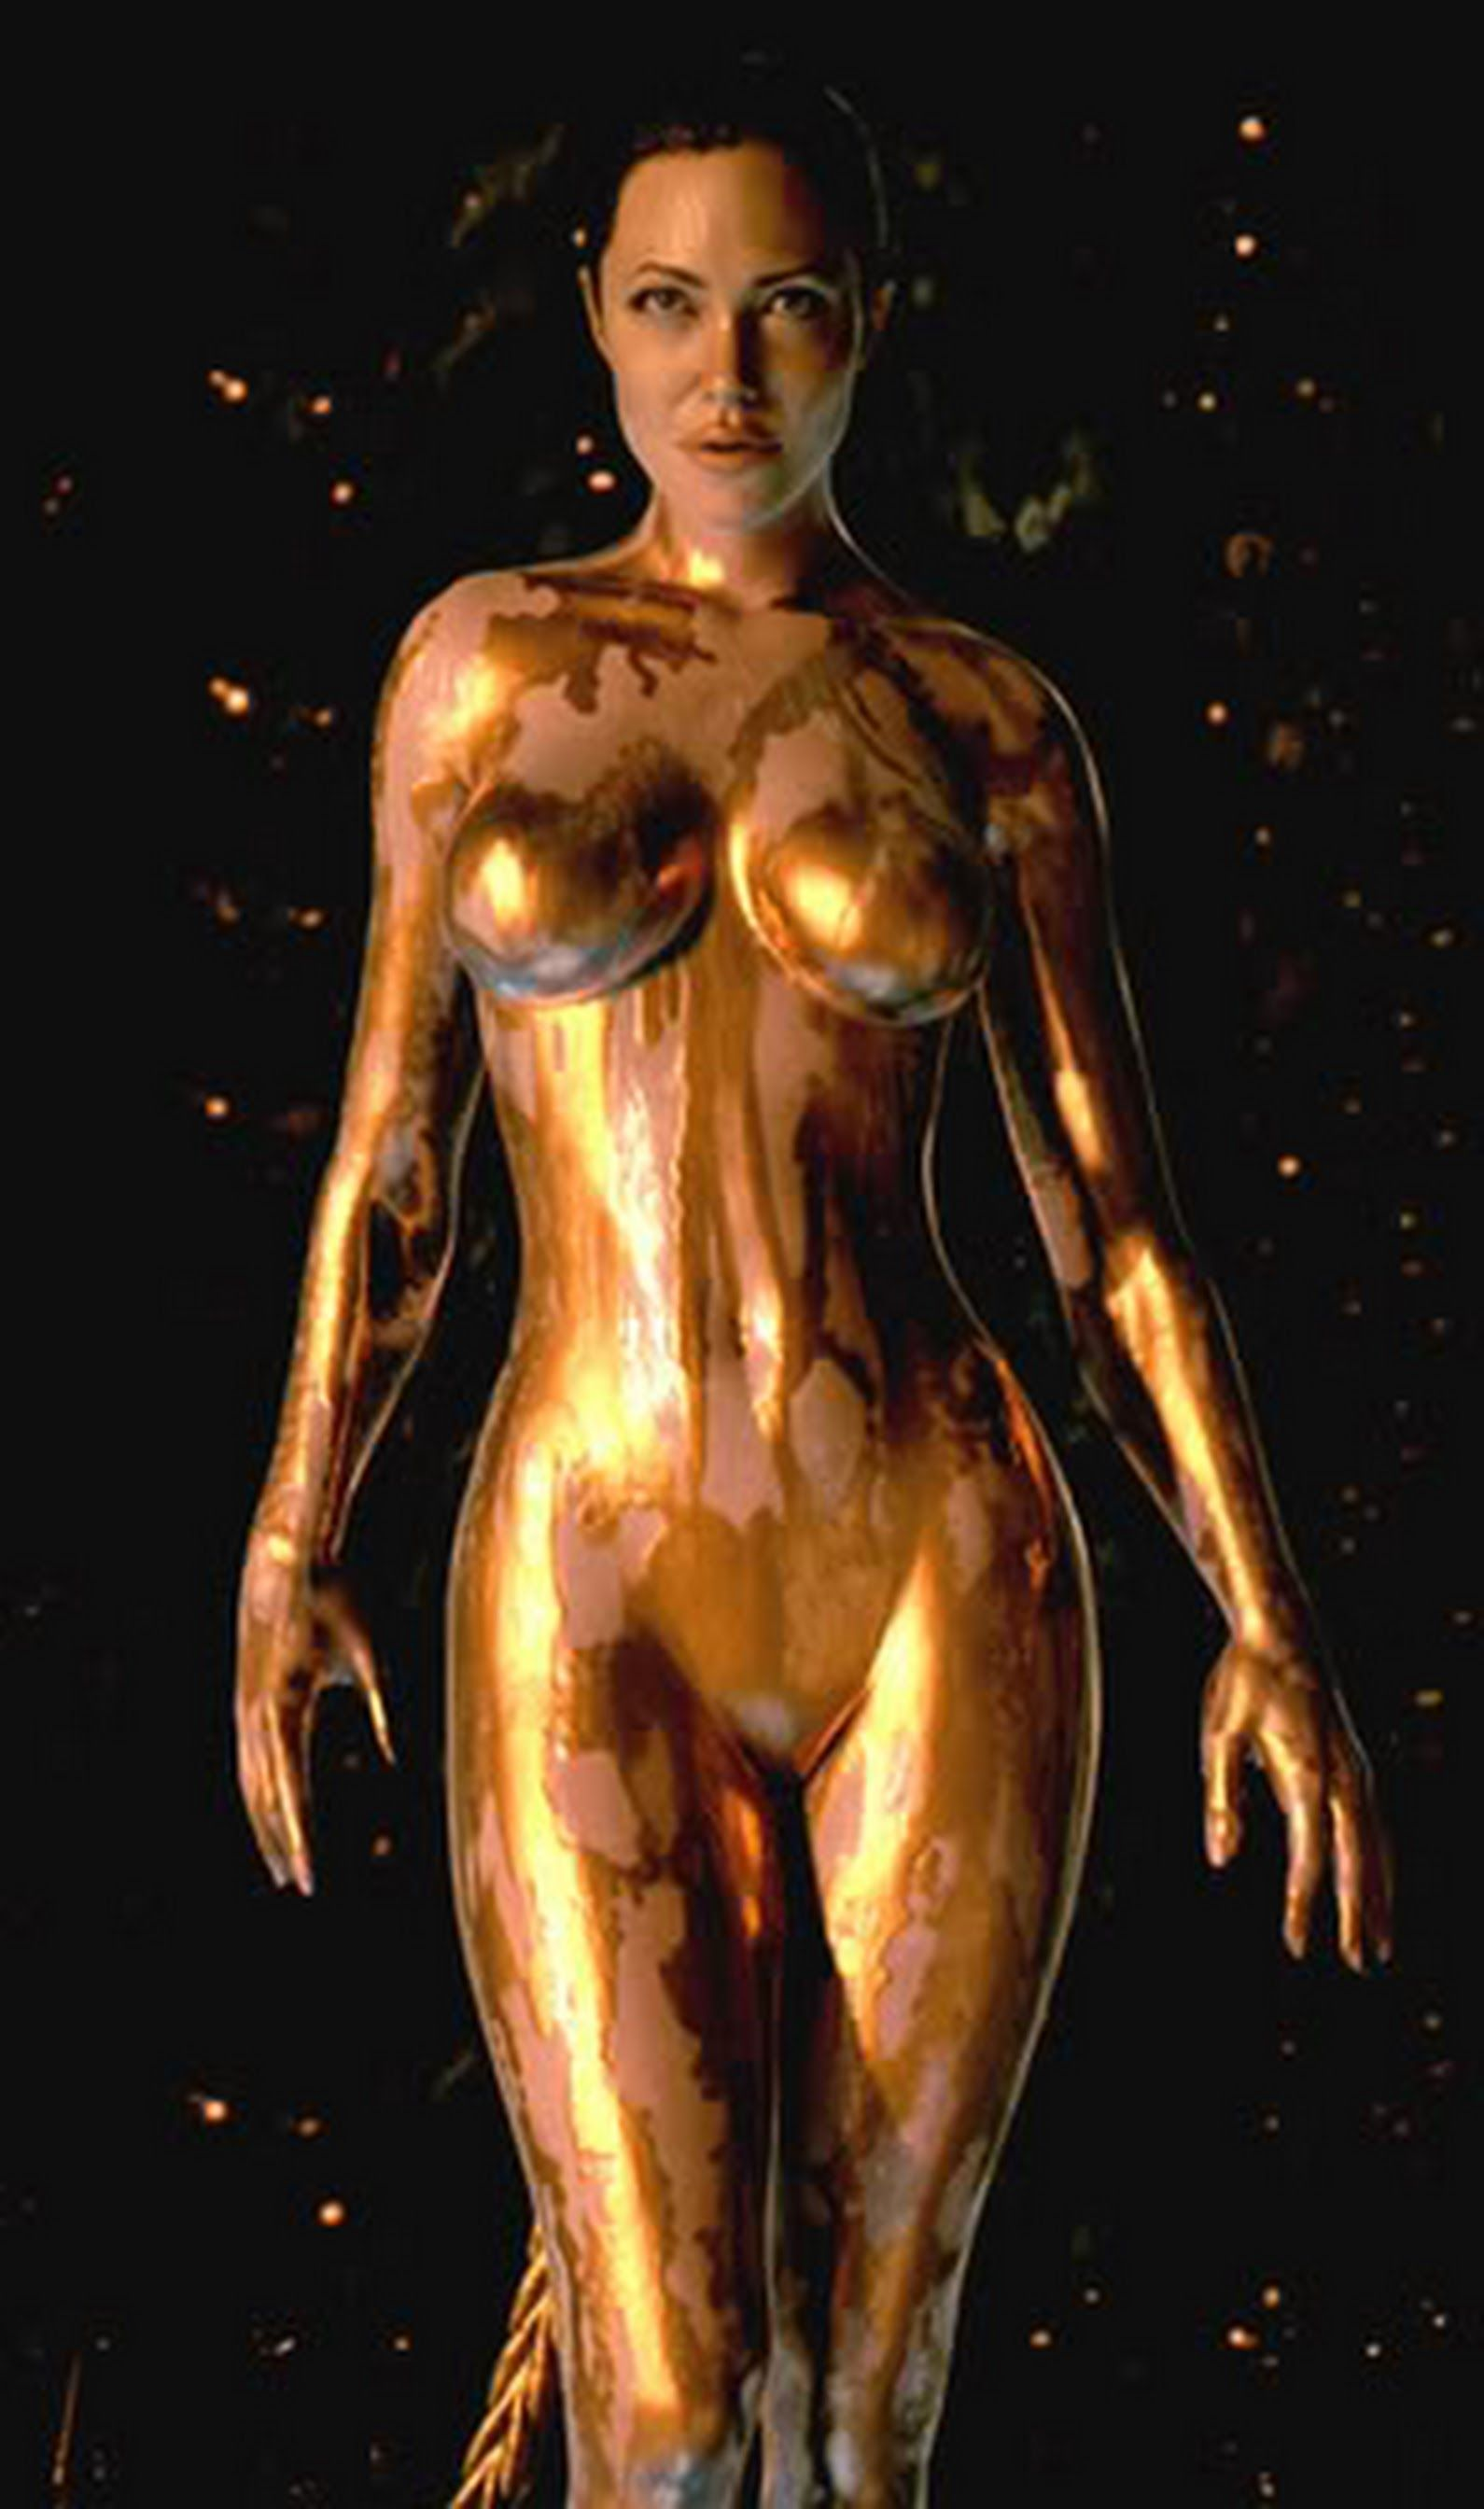 100 Images of Angelina Jolie Beowulf Hot